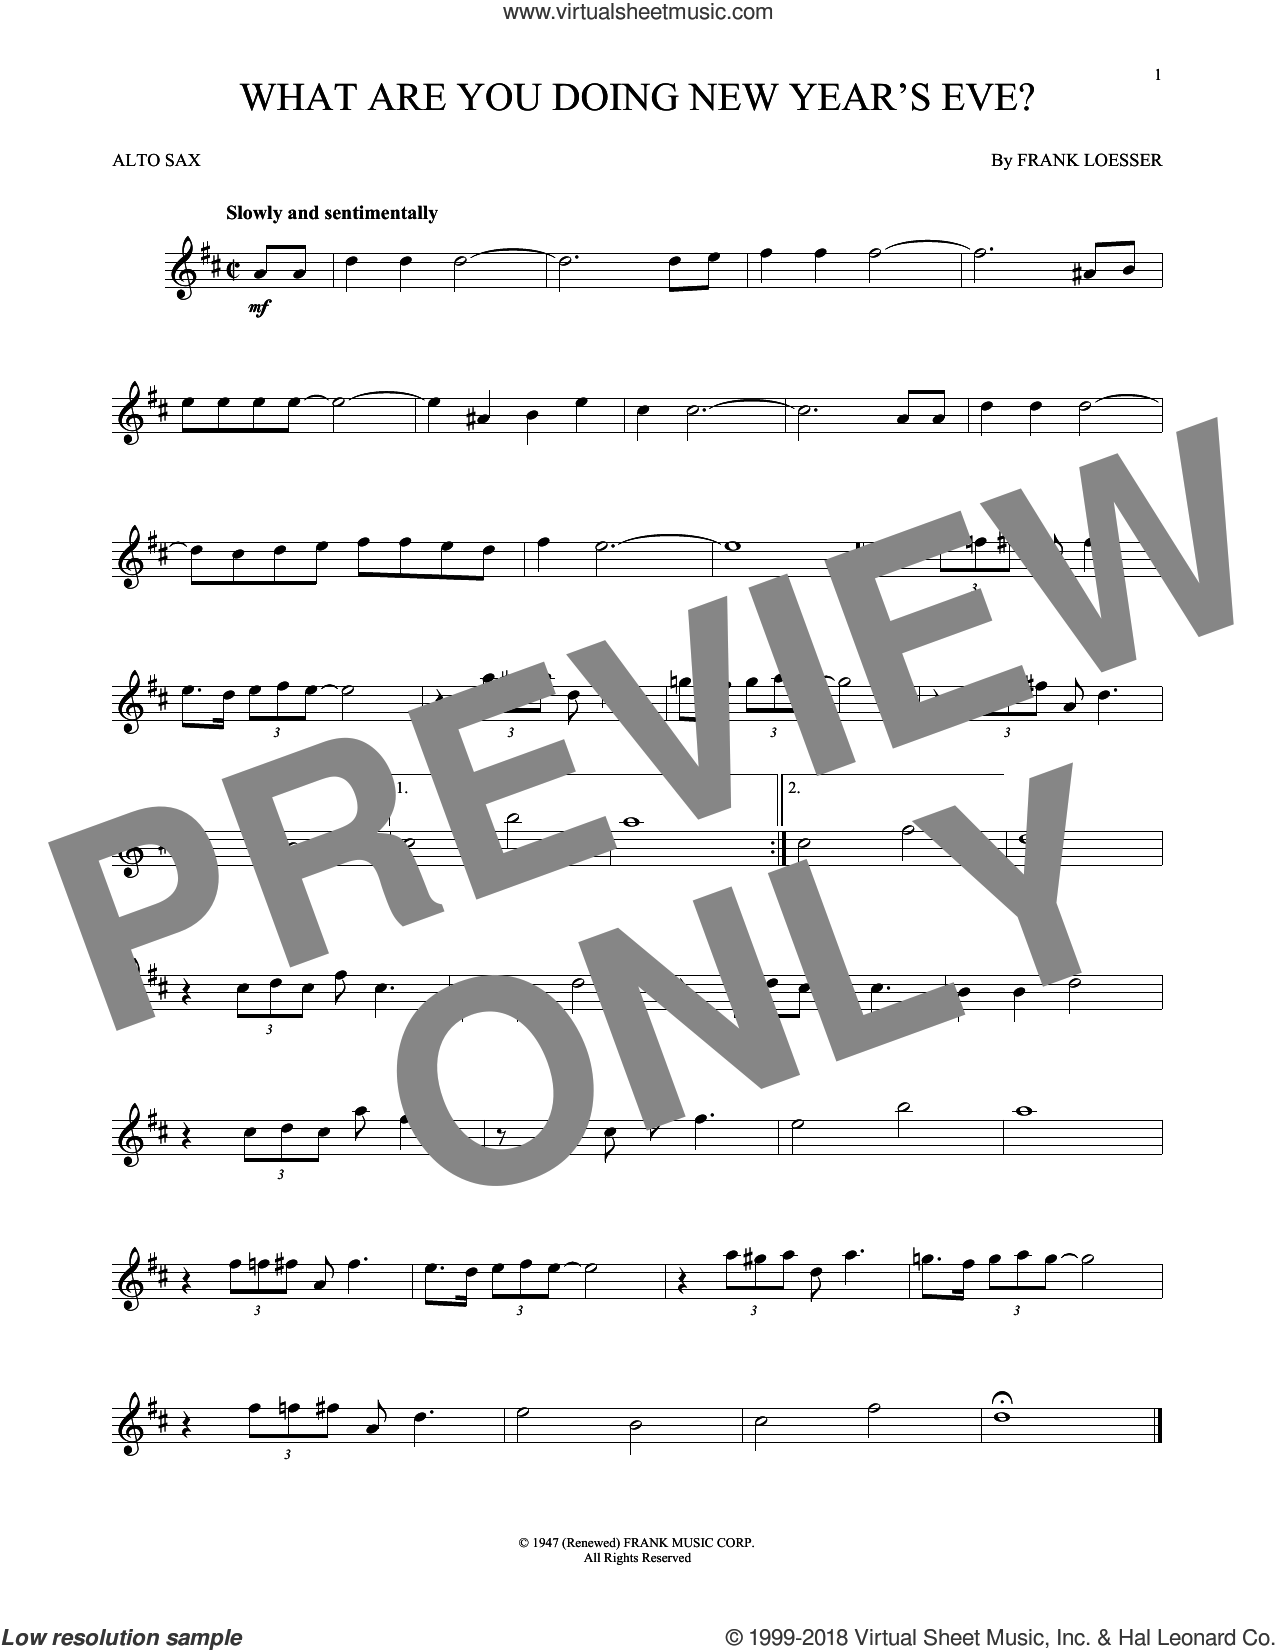 What Are You Doing New Year's Eve? sheet music for alto saxophone solo by Frank Loesser, intermediate skill level